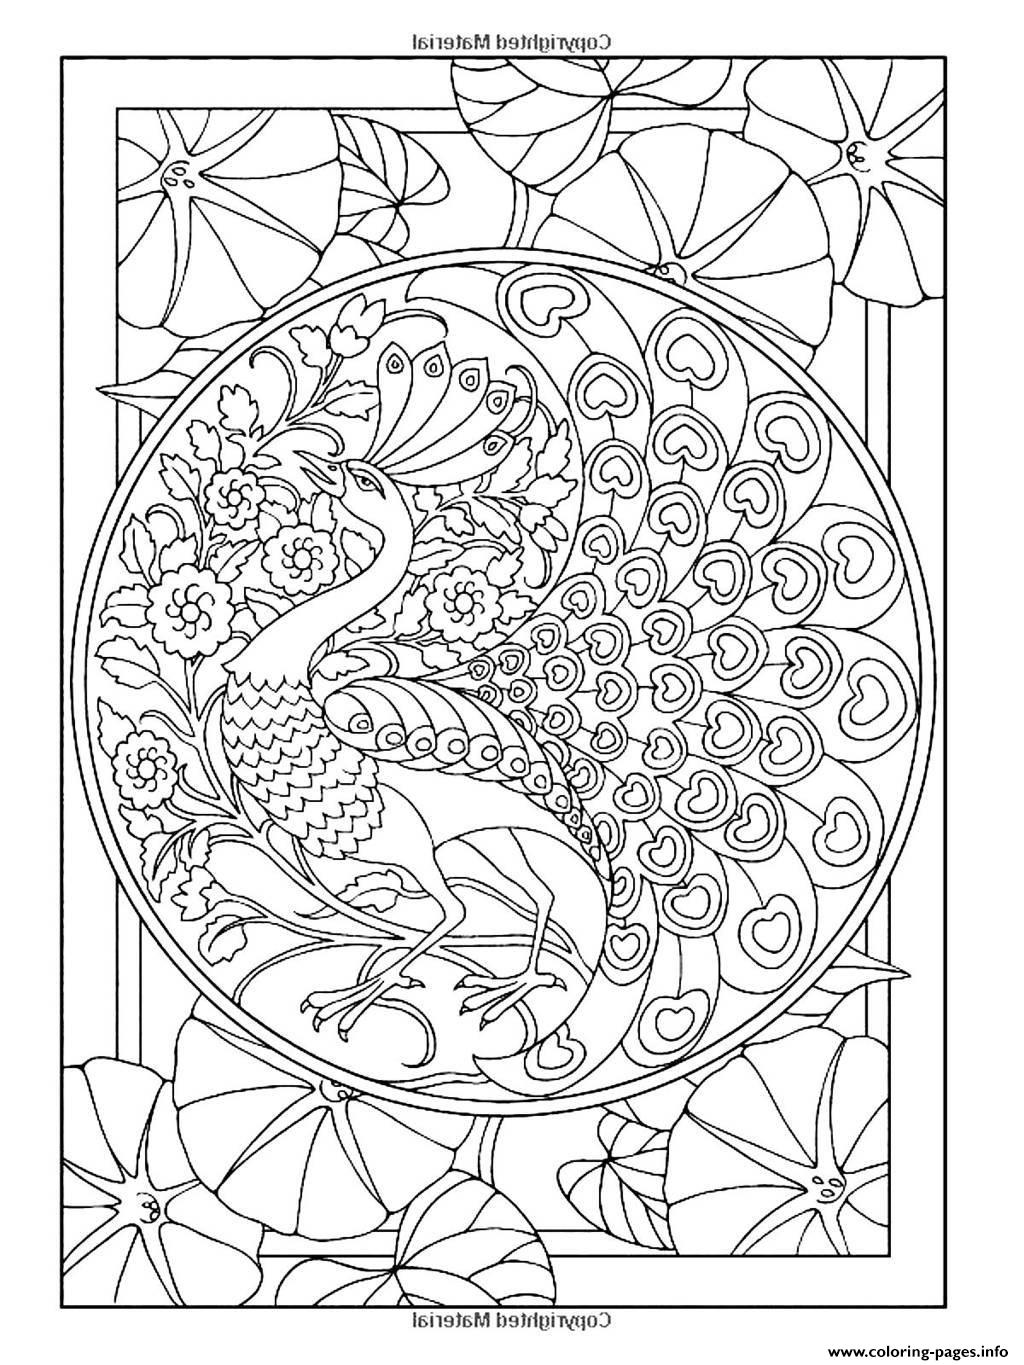 coloring art cinema doodle doodle art doodling adult coloring pages coloring art